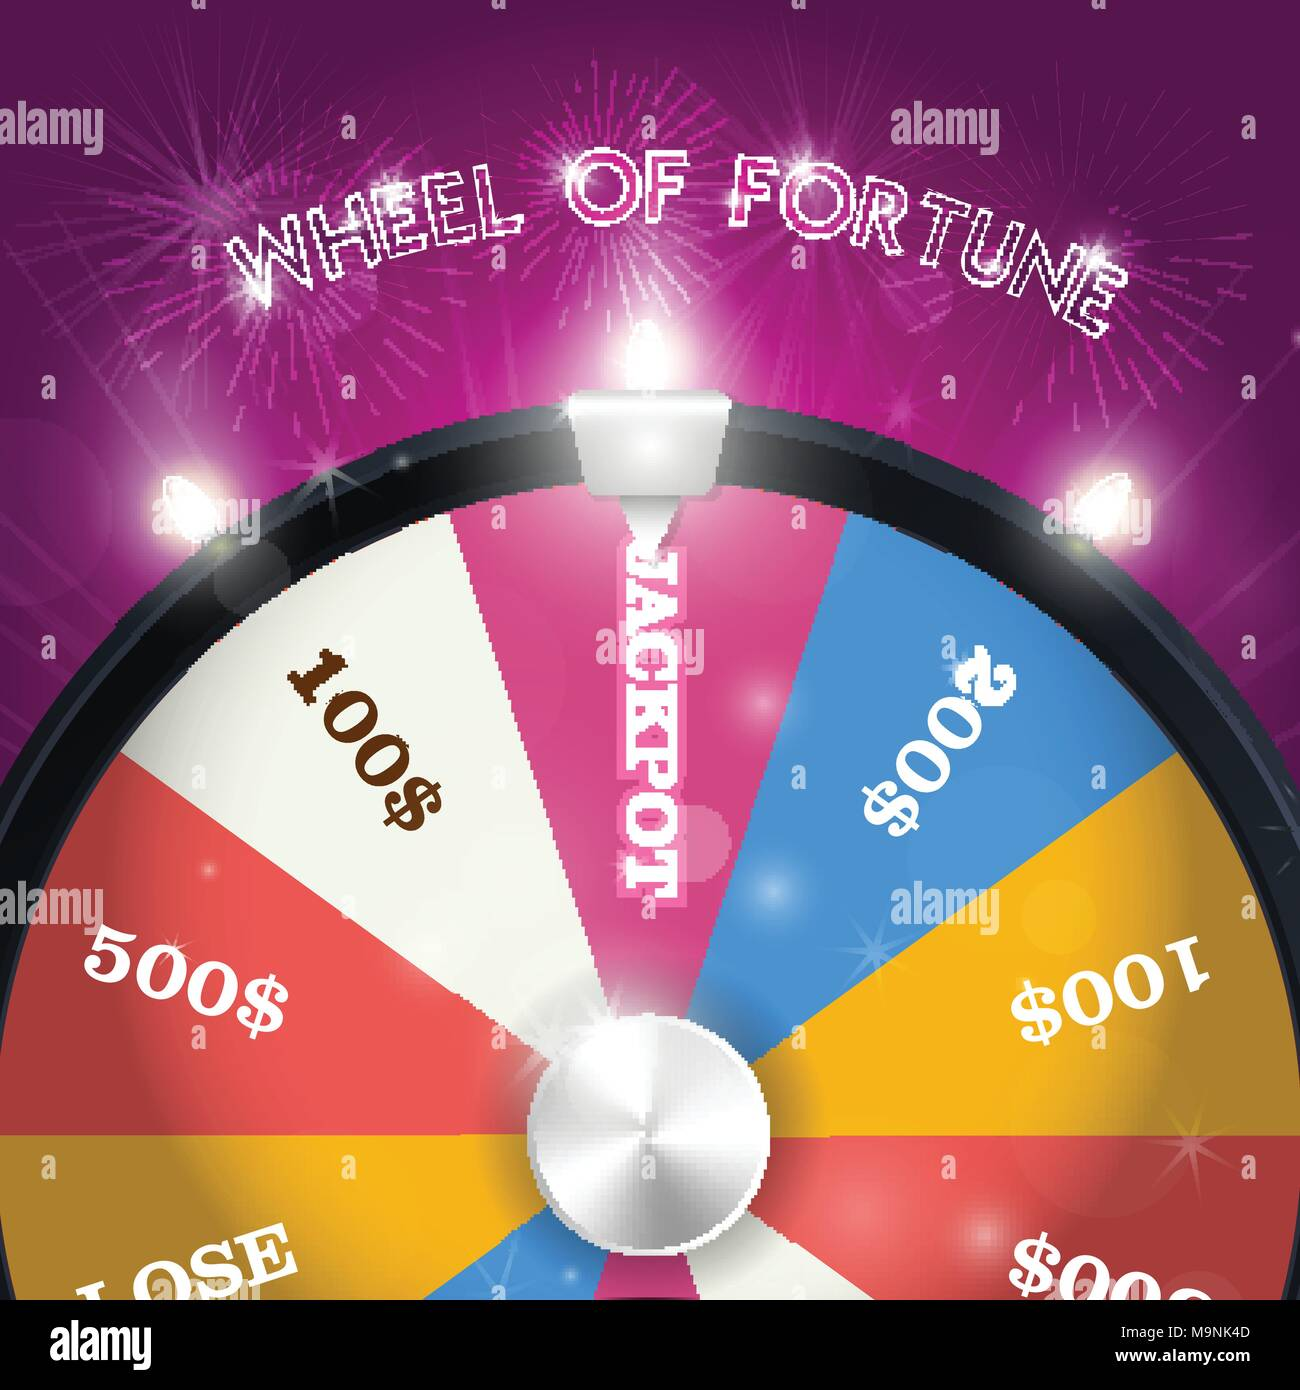 Wheel of fortune - jackpot  sector, lottery win concept - Stock Vector